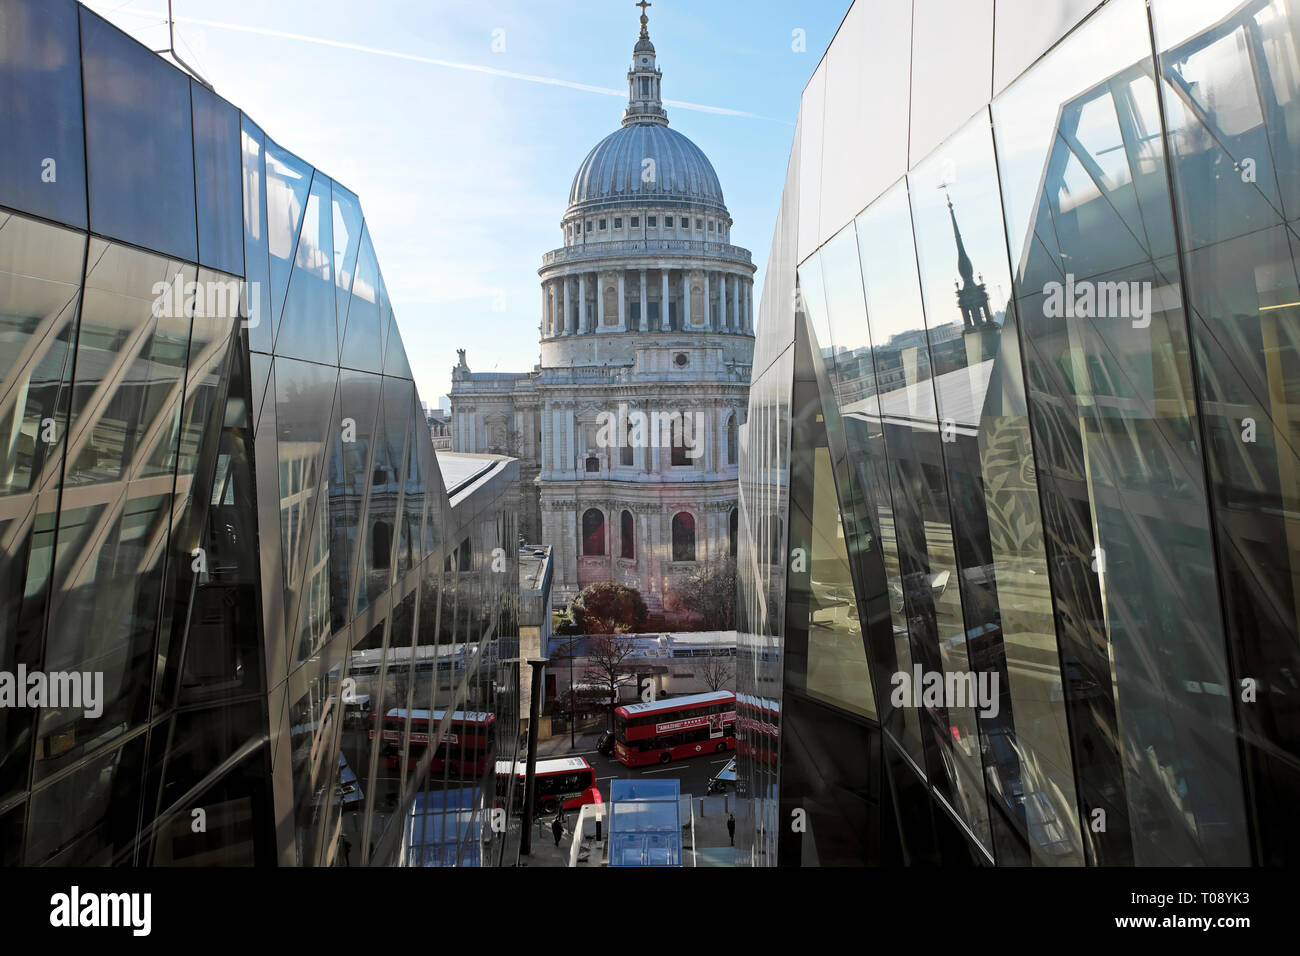 A view of St Pauls Cathedral dome from the elevator of One New Change and a view of the street and traffic below in London UK  KATHY DEWITT - Stock Image